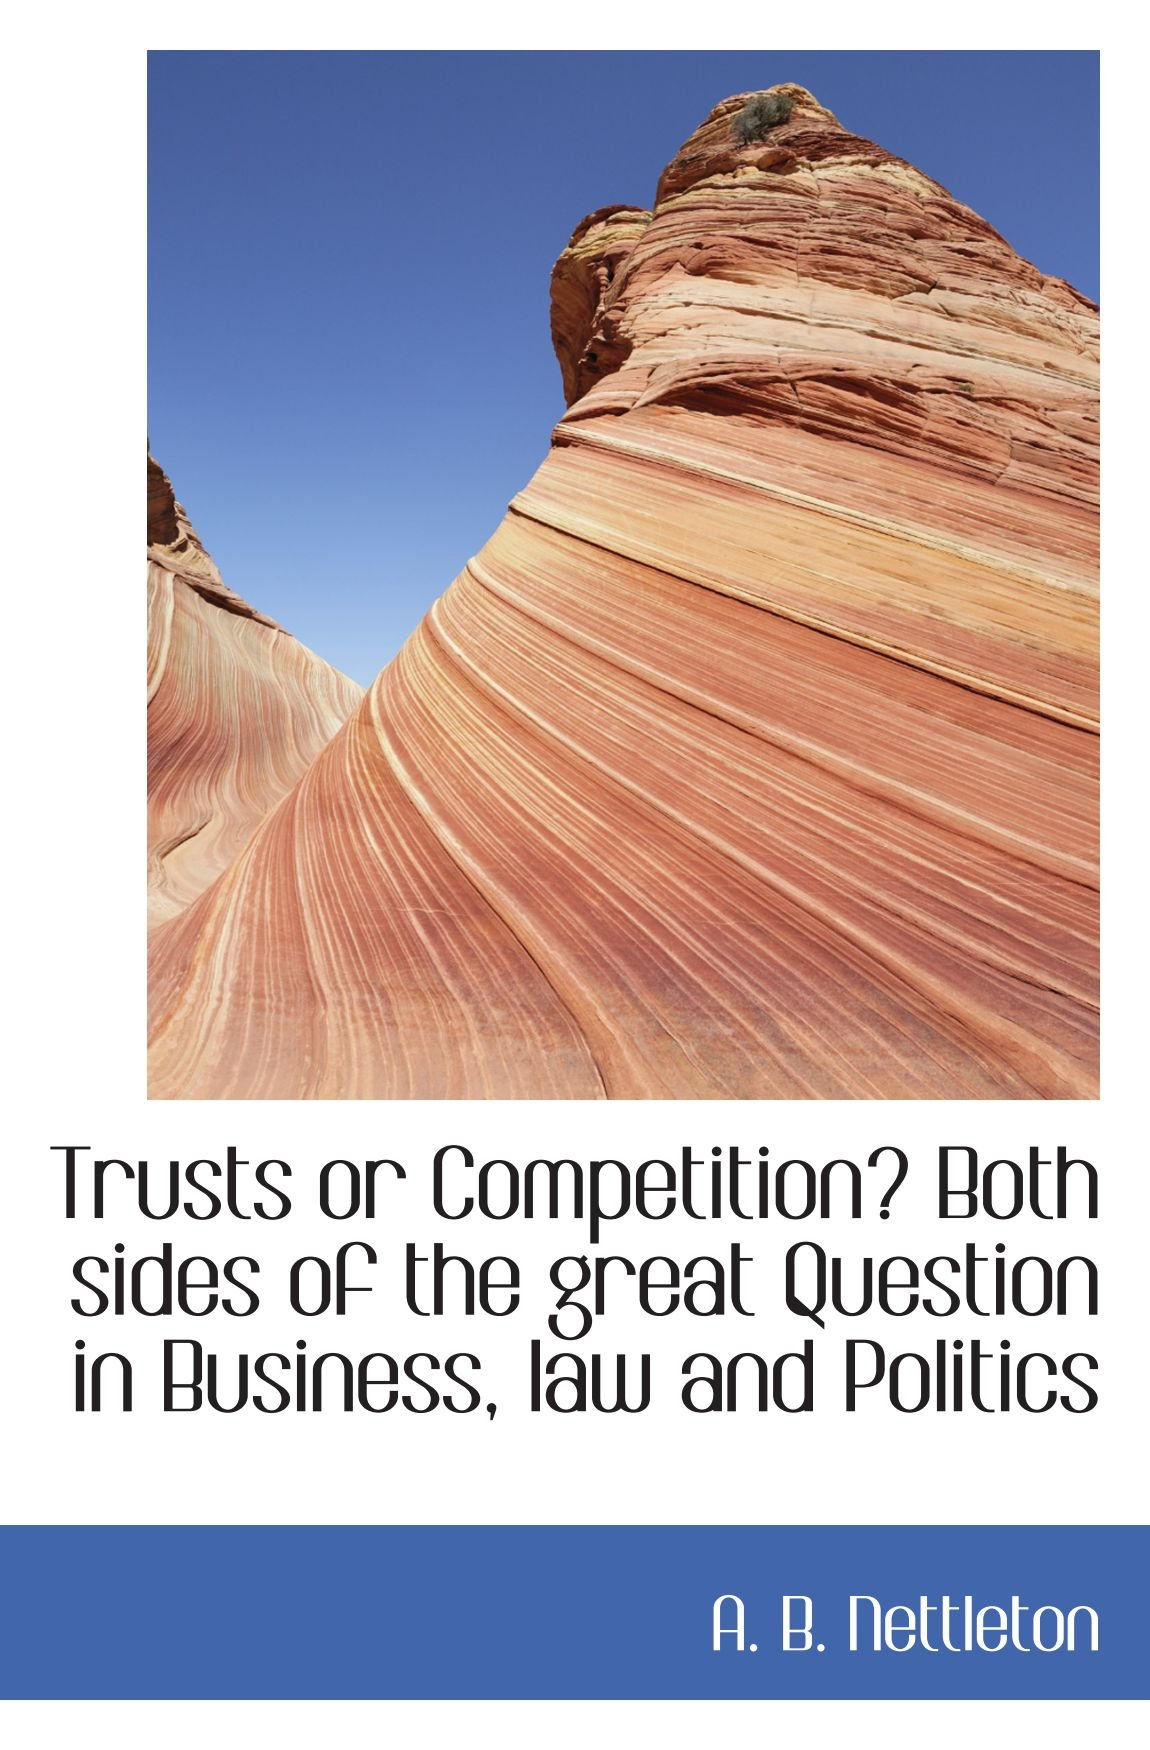 Trusts or Competition? Both sides of the great Question in Business, law and Politics PDF